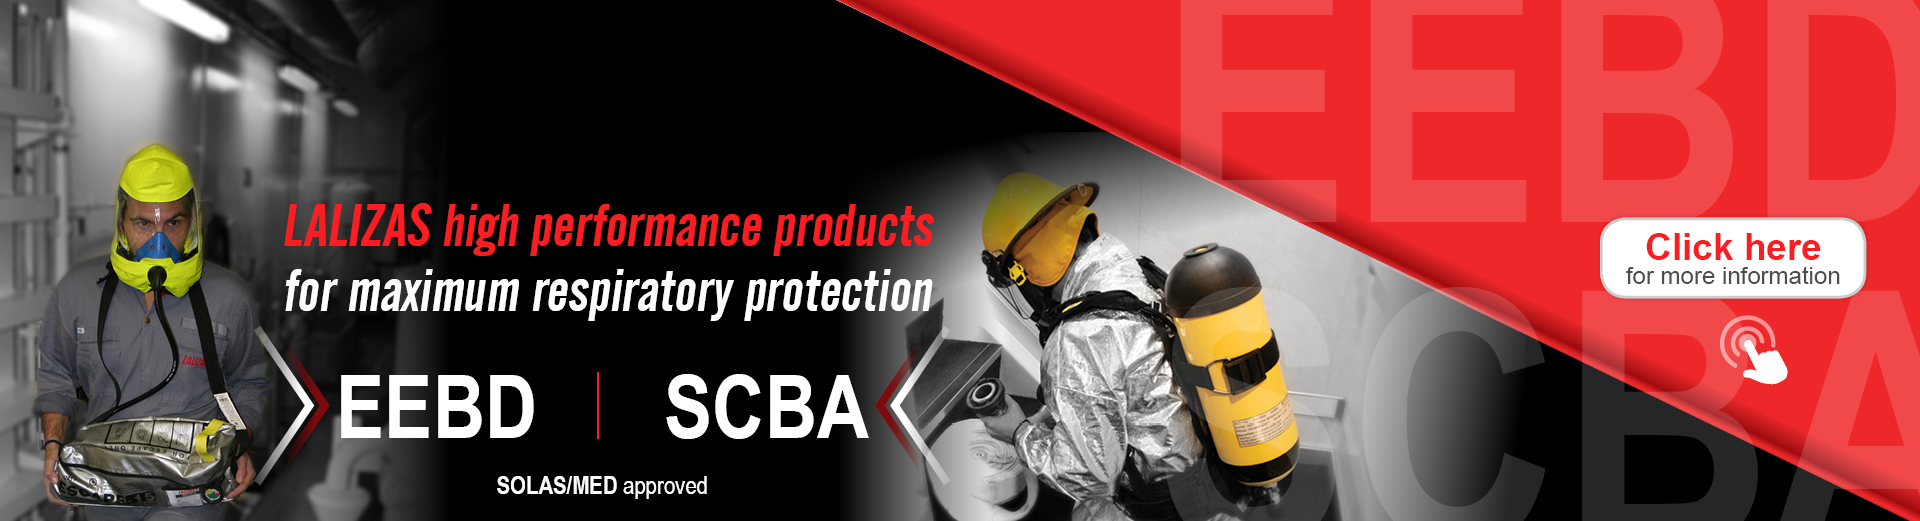 LALIZAS - Safety Equipment Manufacturer